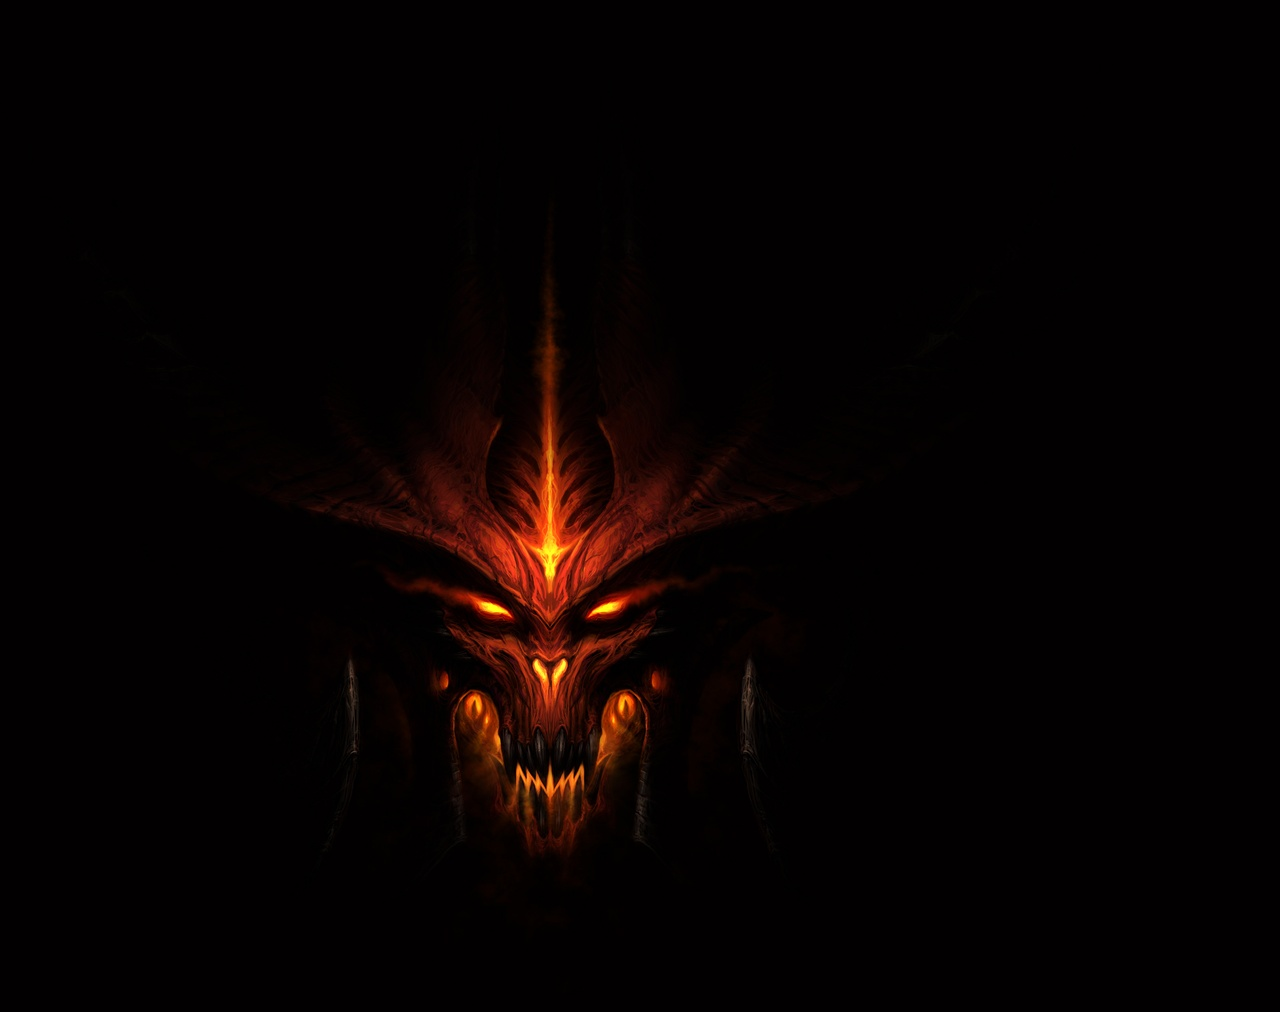 Gamer's Journey: Going to Hell with Diablo III Part 1: Back to Computer Gaming